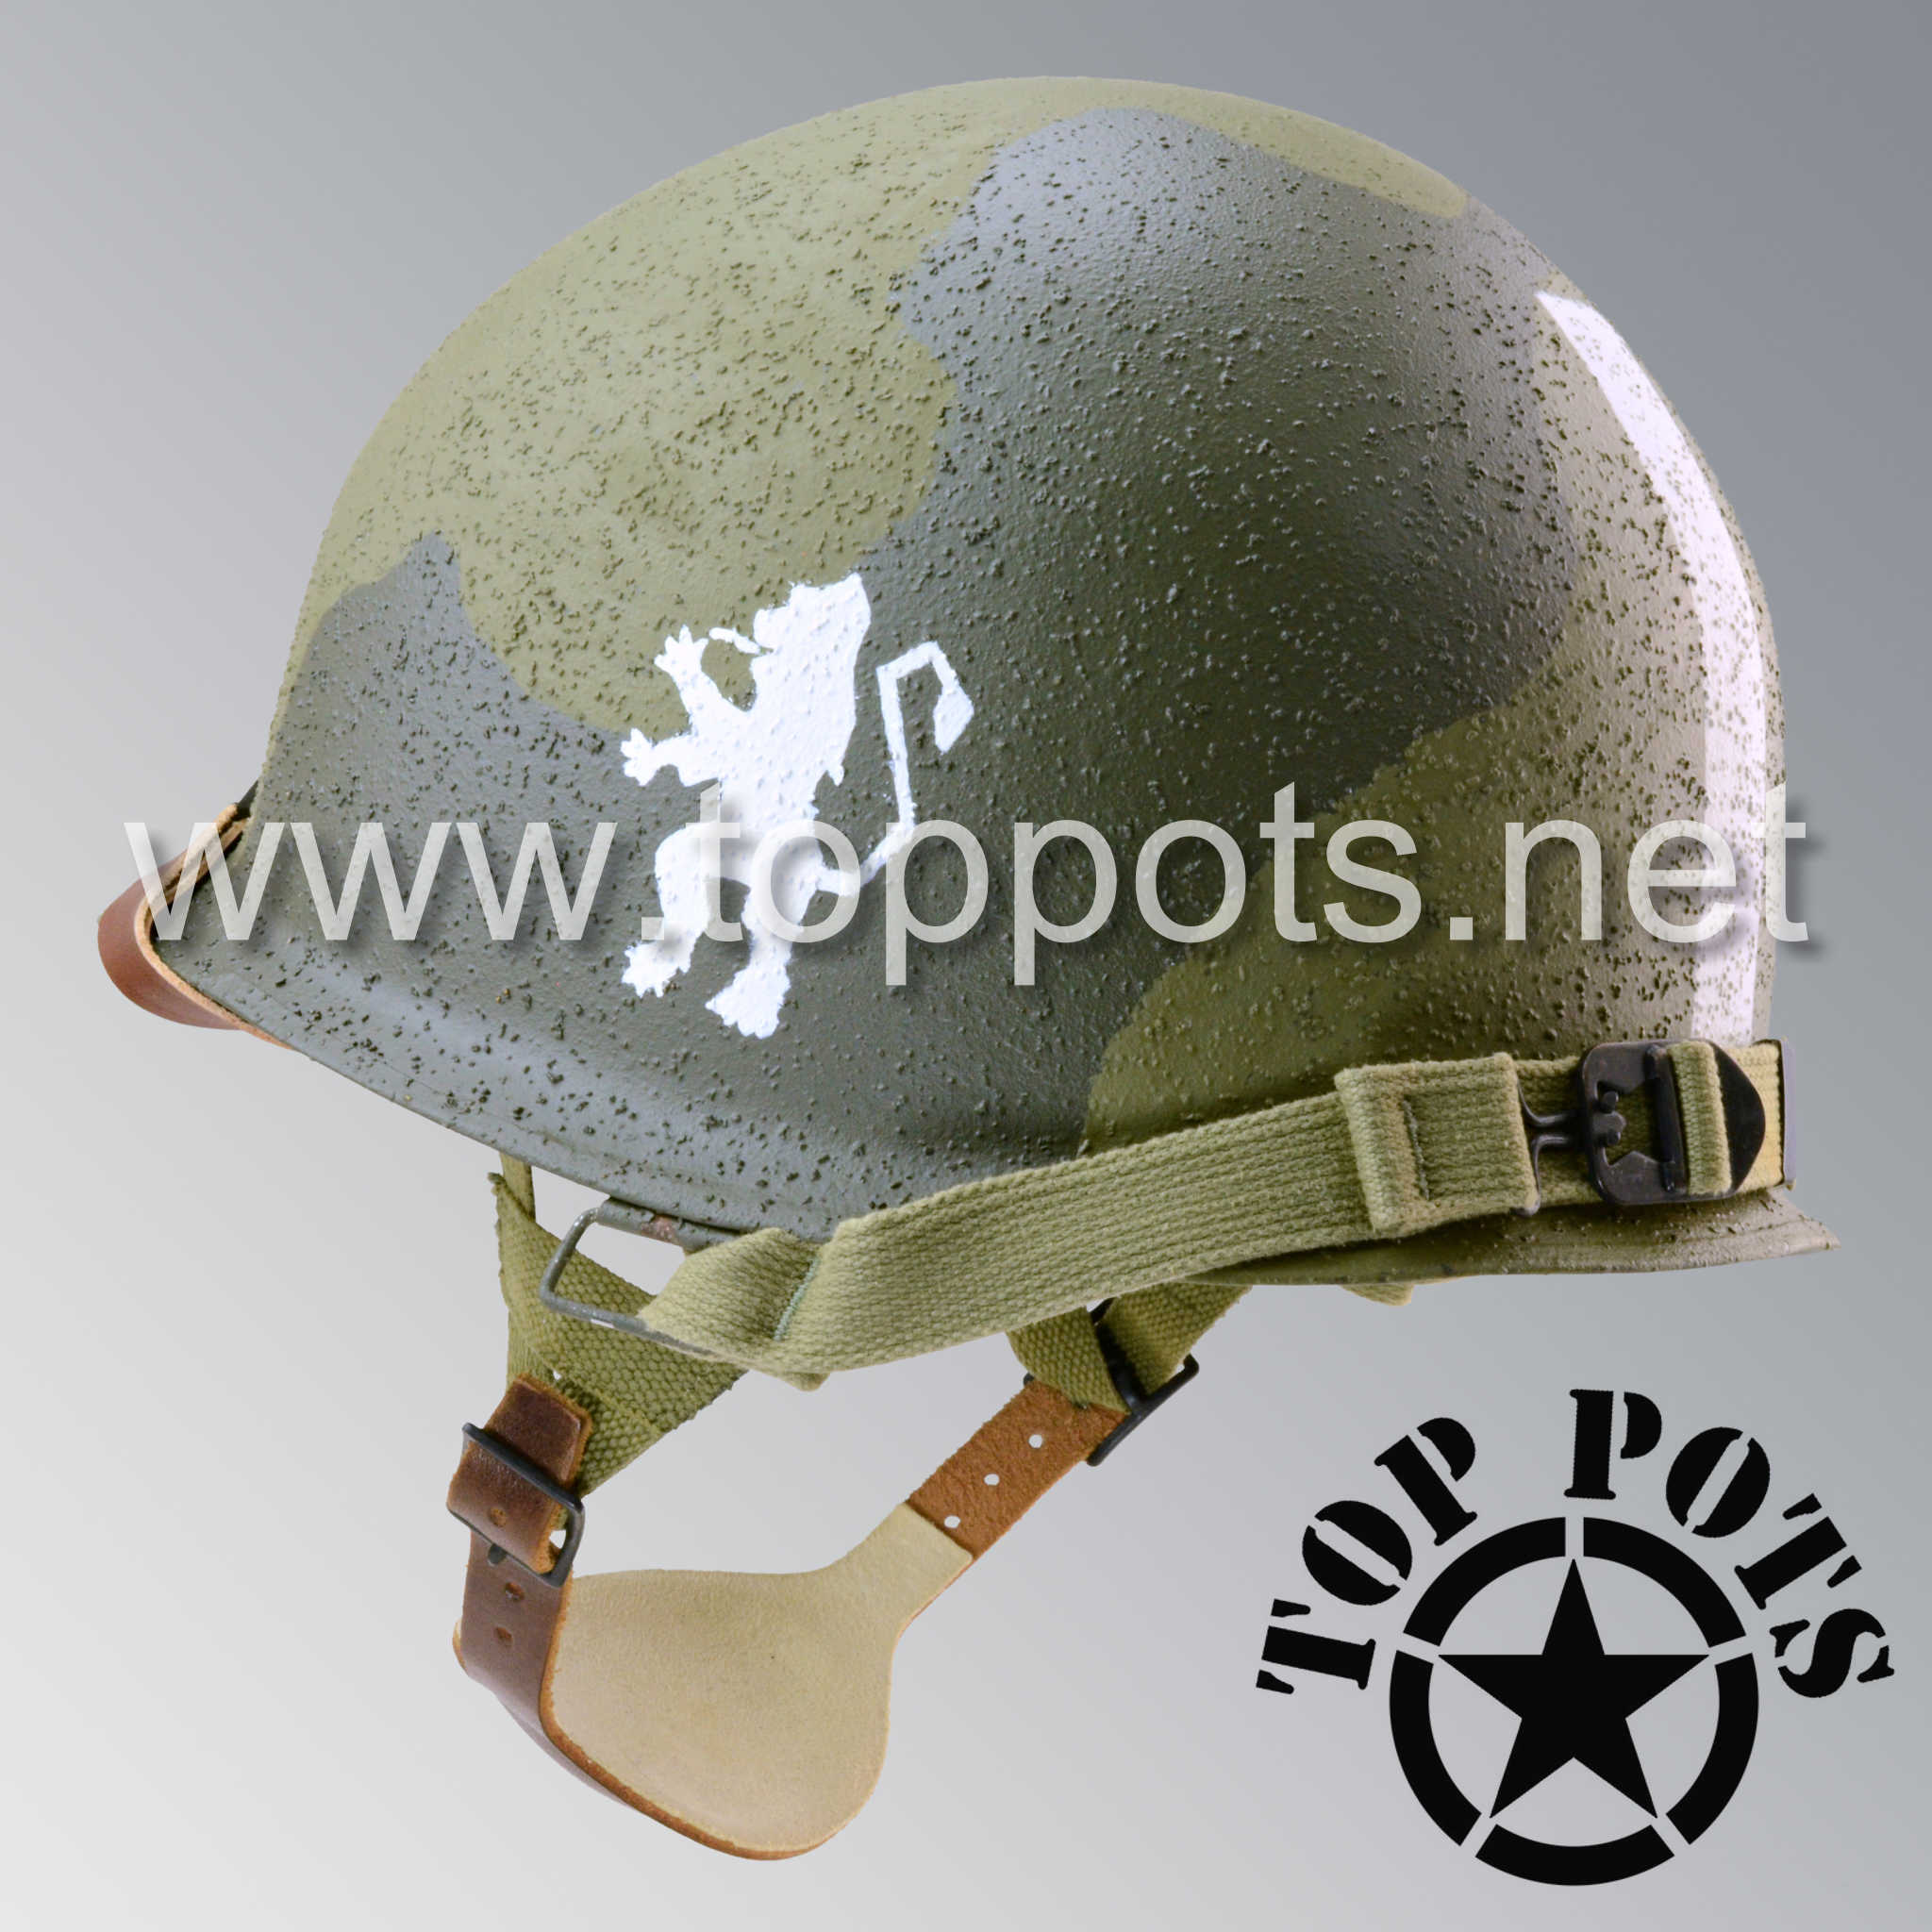 WW2 Reproduction,WWII//WWI Collectibles Goods,Collectibles Products,WWII repro LOT of 5 Chin Cups,WWII Reproduction WWII US Army Paratrooper Leather Chin Cup